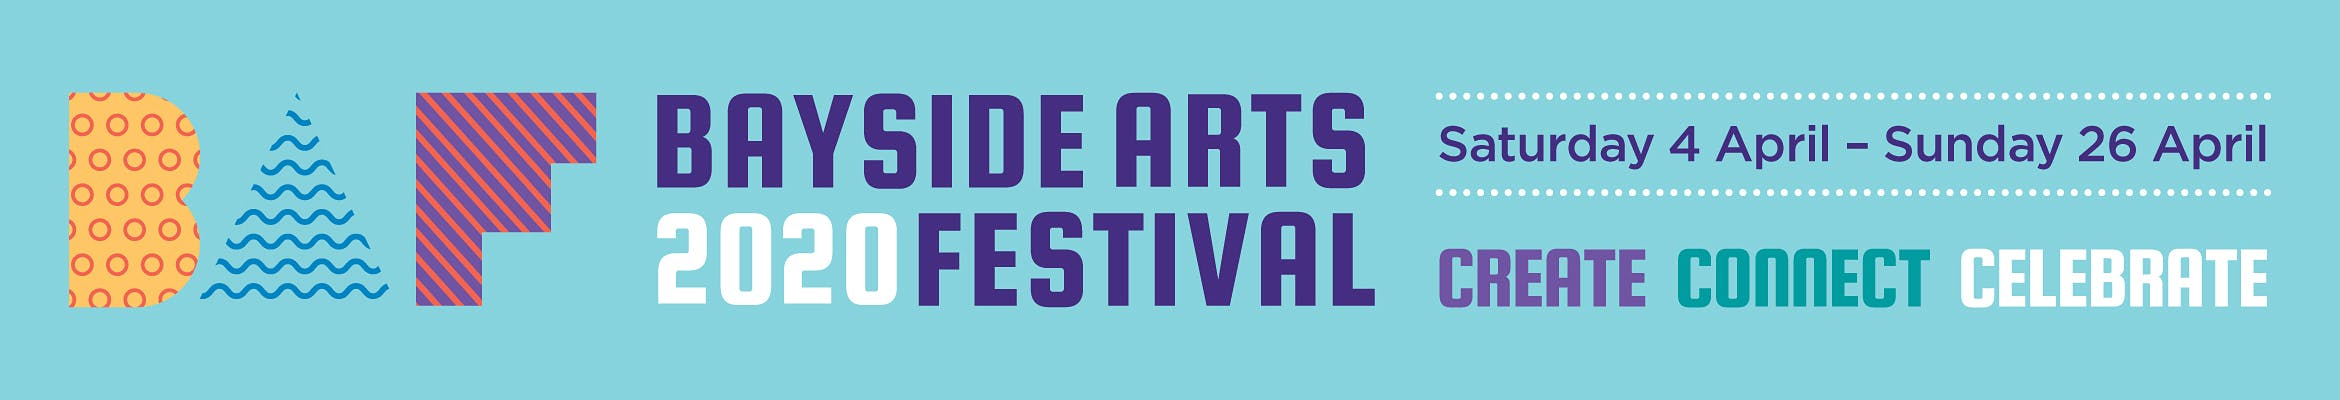 Bayside Arts Festival 2020 - Saturday 4 April - Sunday 26 April - Create, Connect, Celebrate